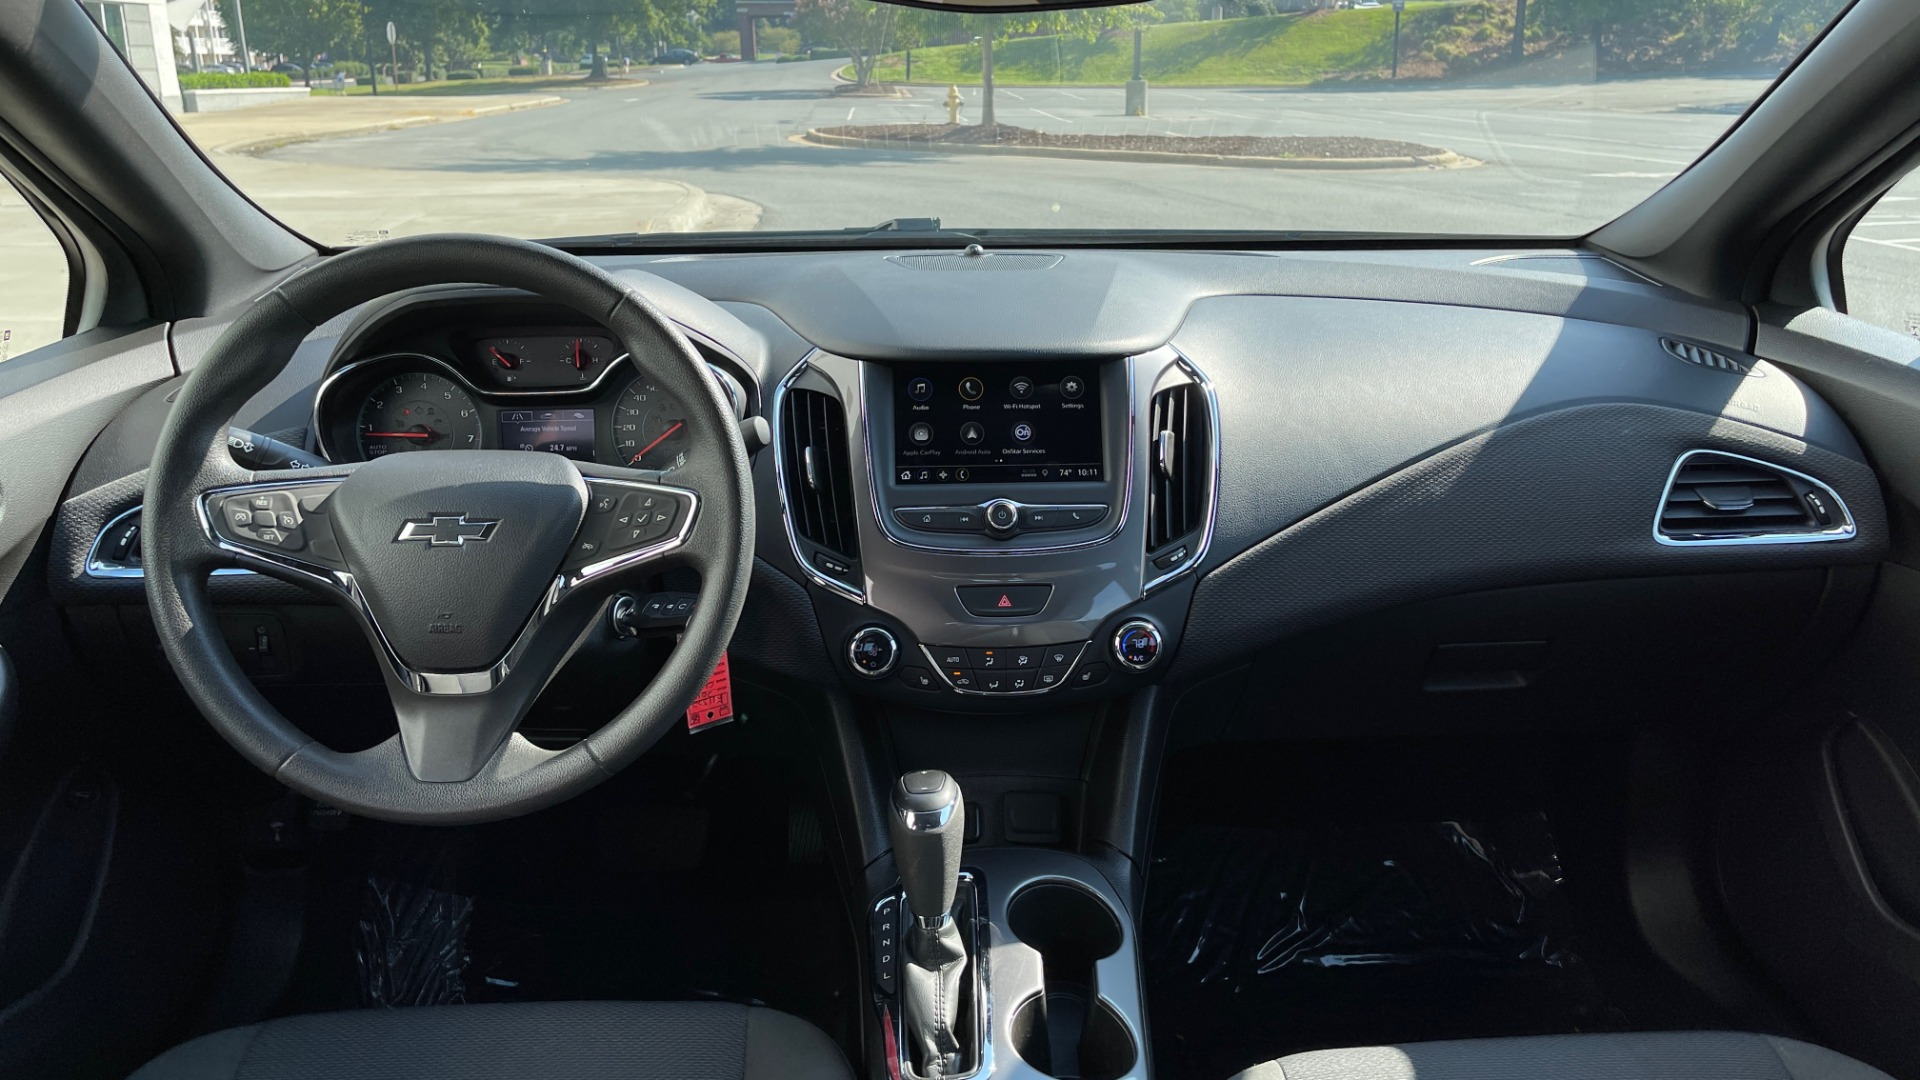 Used 2019 Chevrolet CRUZE LT / 1.4L TURBO / 6-SPD AUTO / AIR CONDITIONING / REARVIEW for sale $18,495 at Formula Imports in Charlotte NC 28227 40